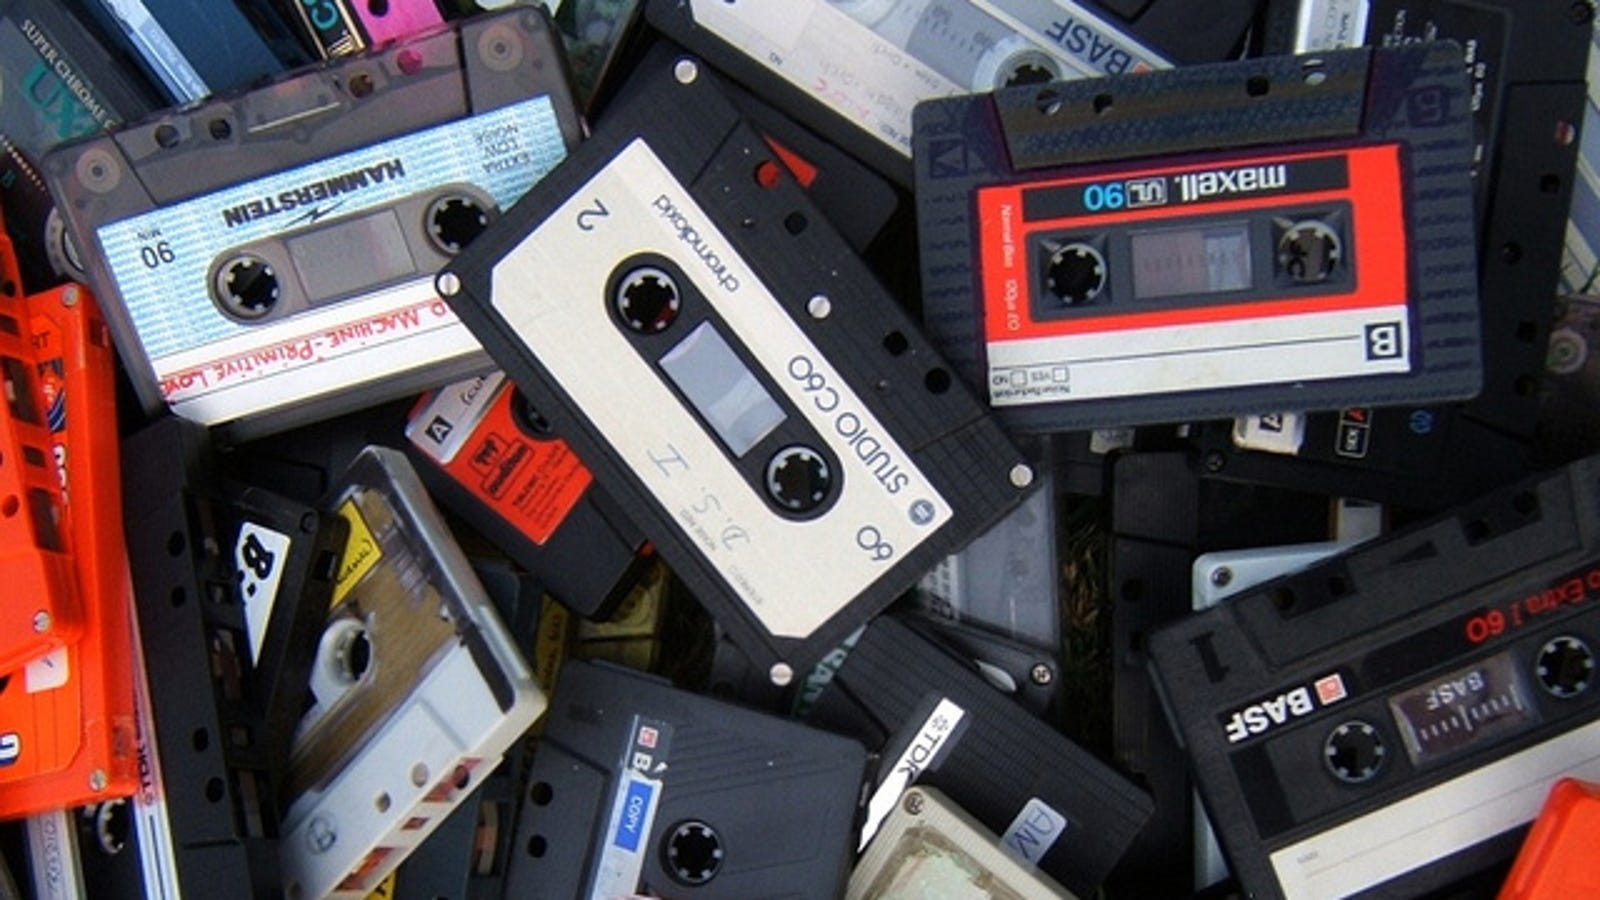 Turn Your Rare and Homemade Cassette Tapes Into MP3s with ...